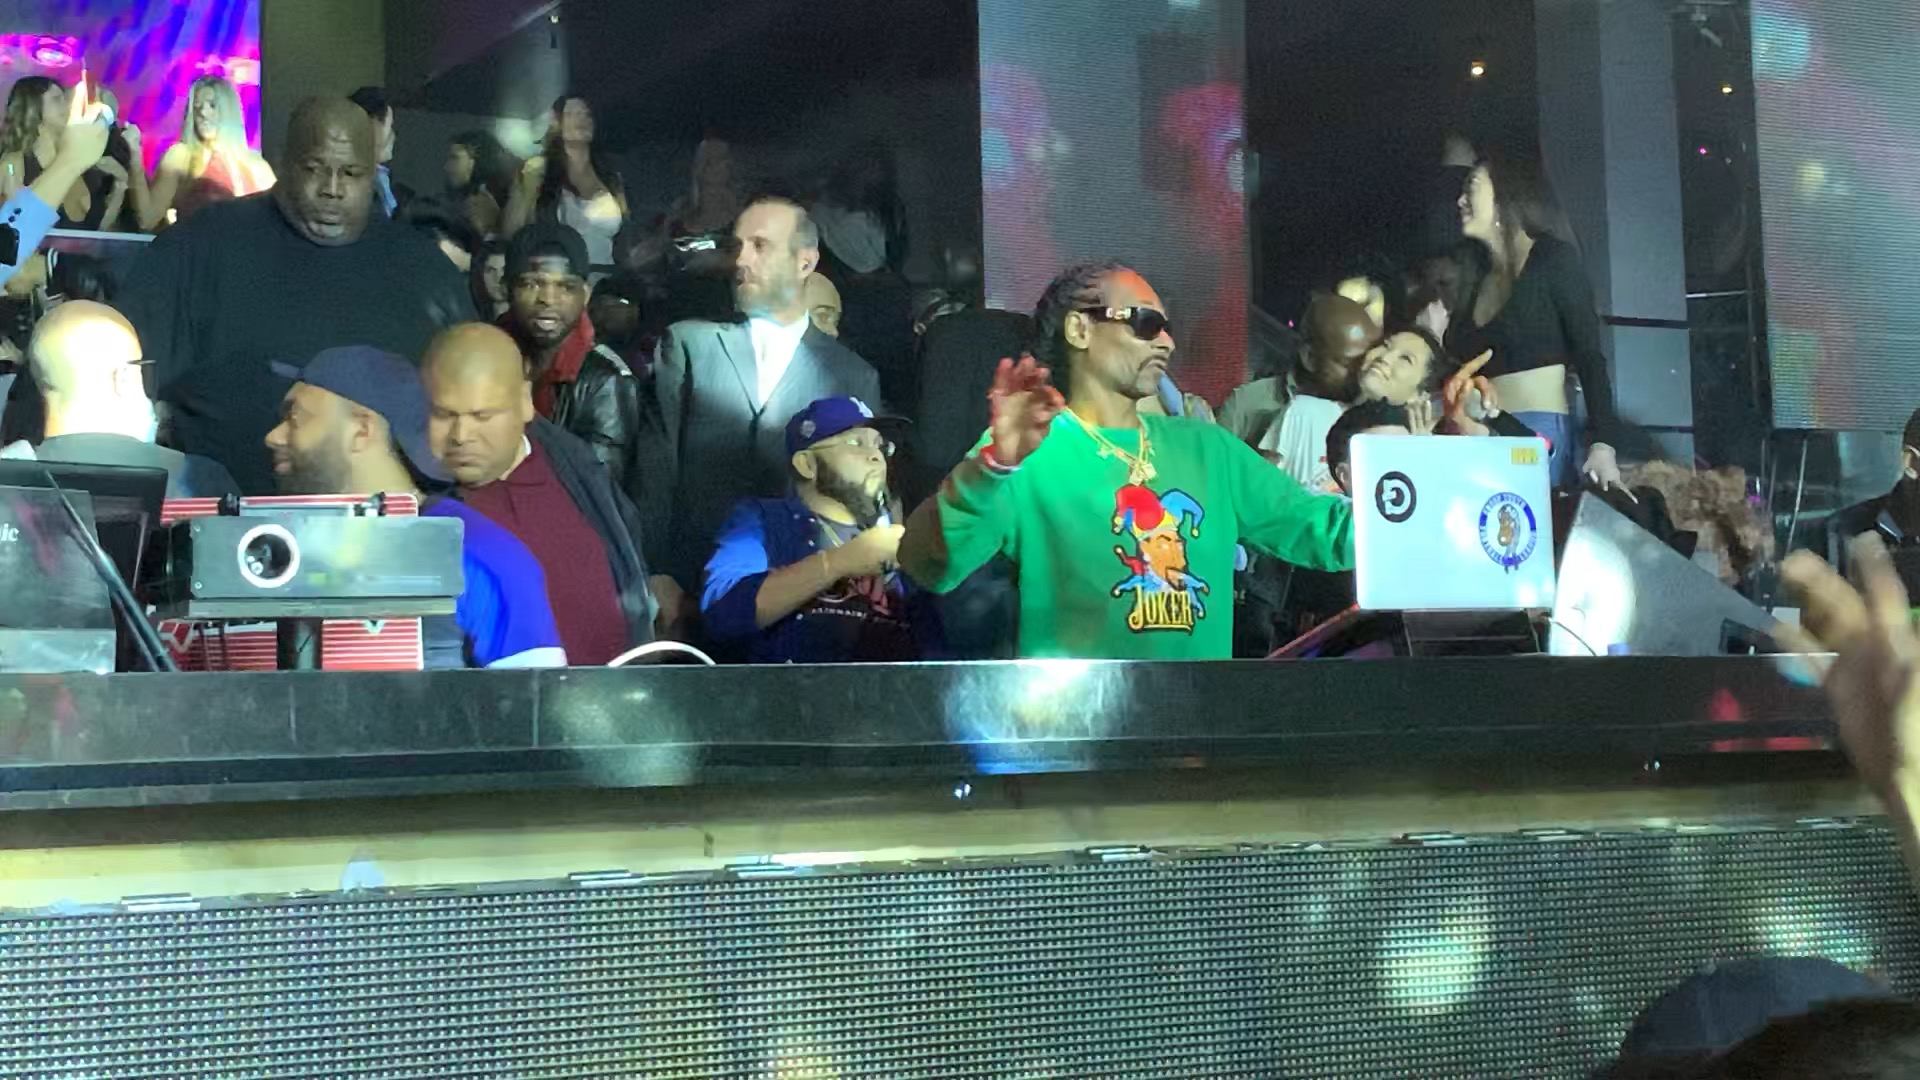 Snoop Doggy Dog LIV Miami Beach Spring Break